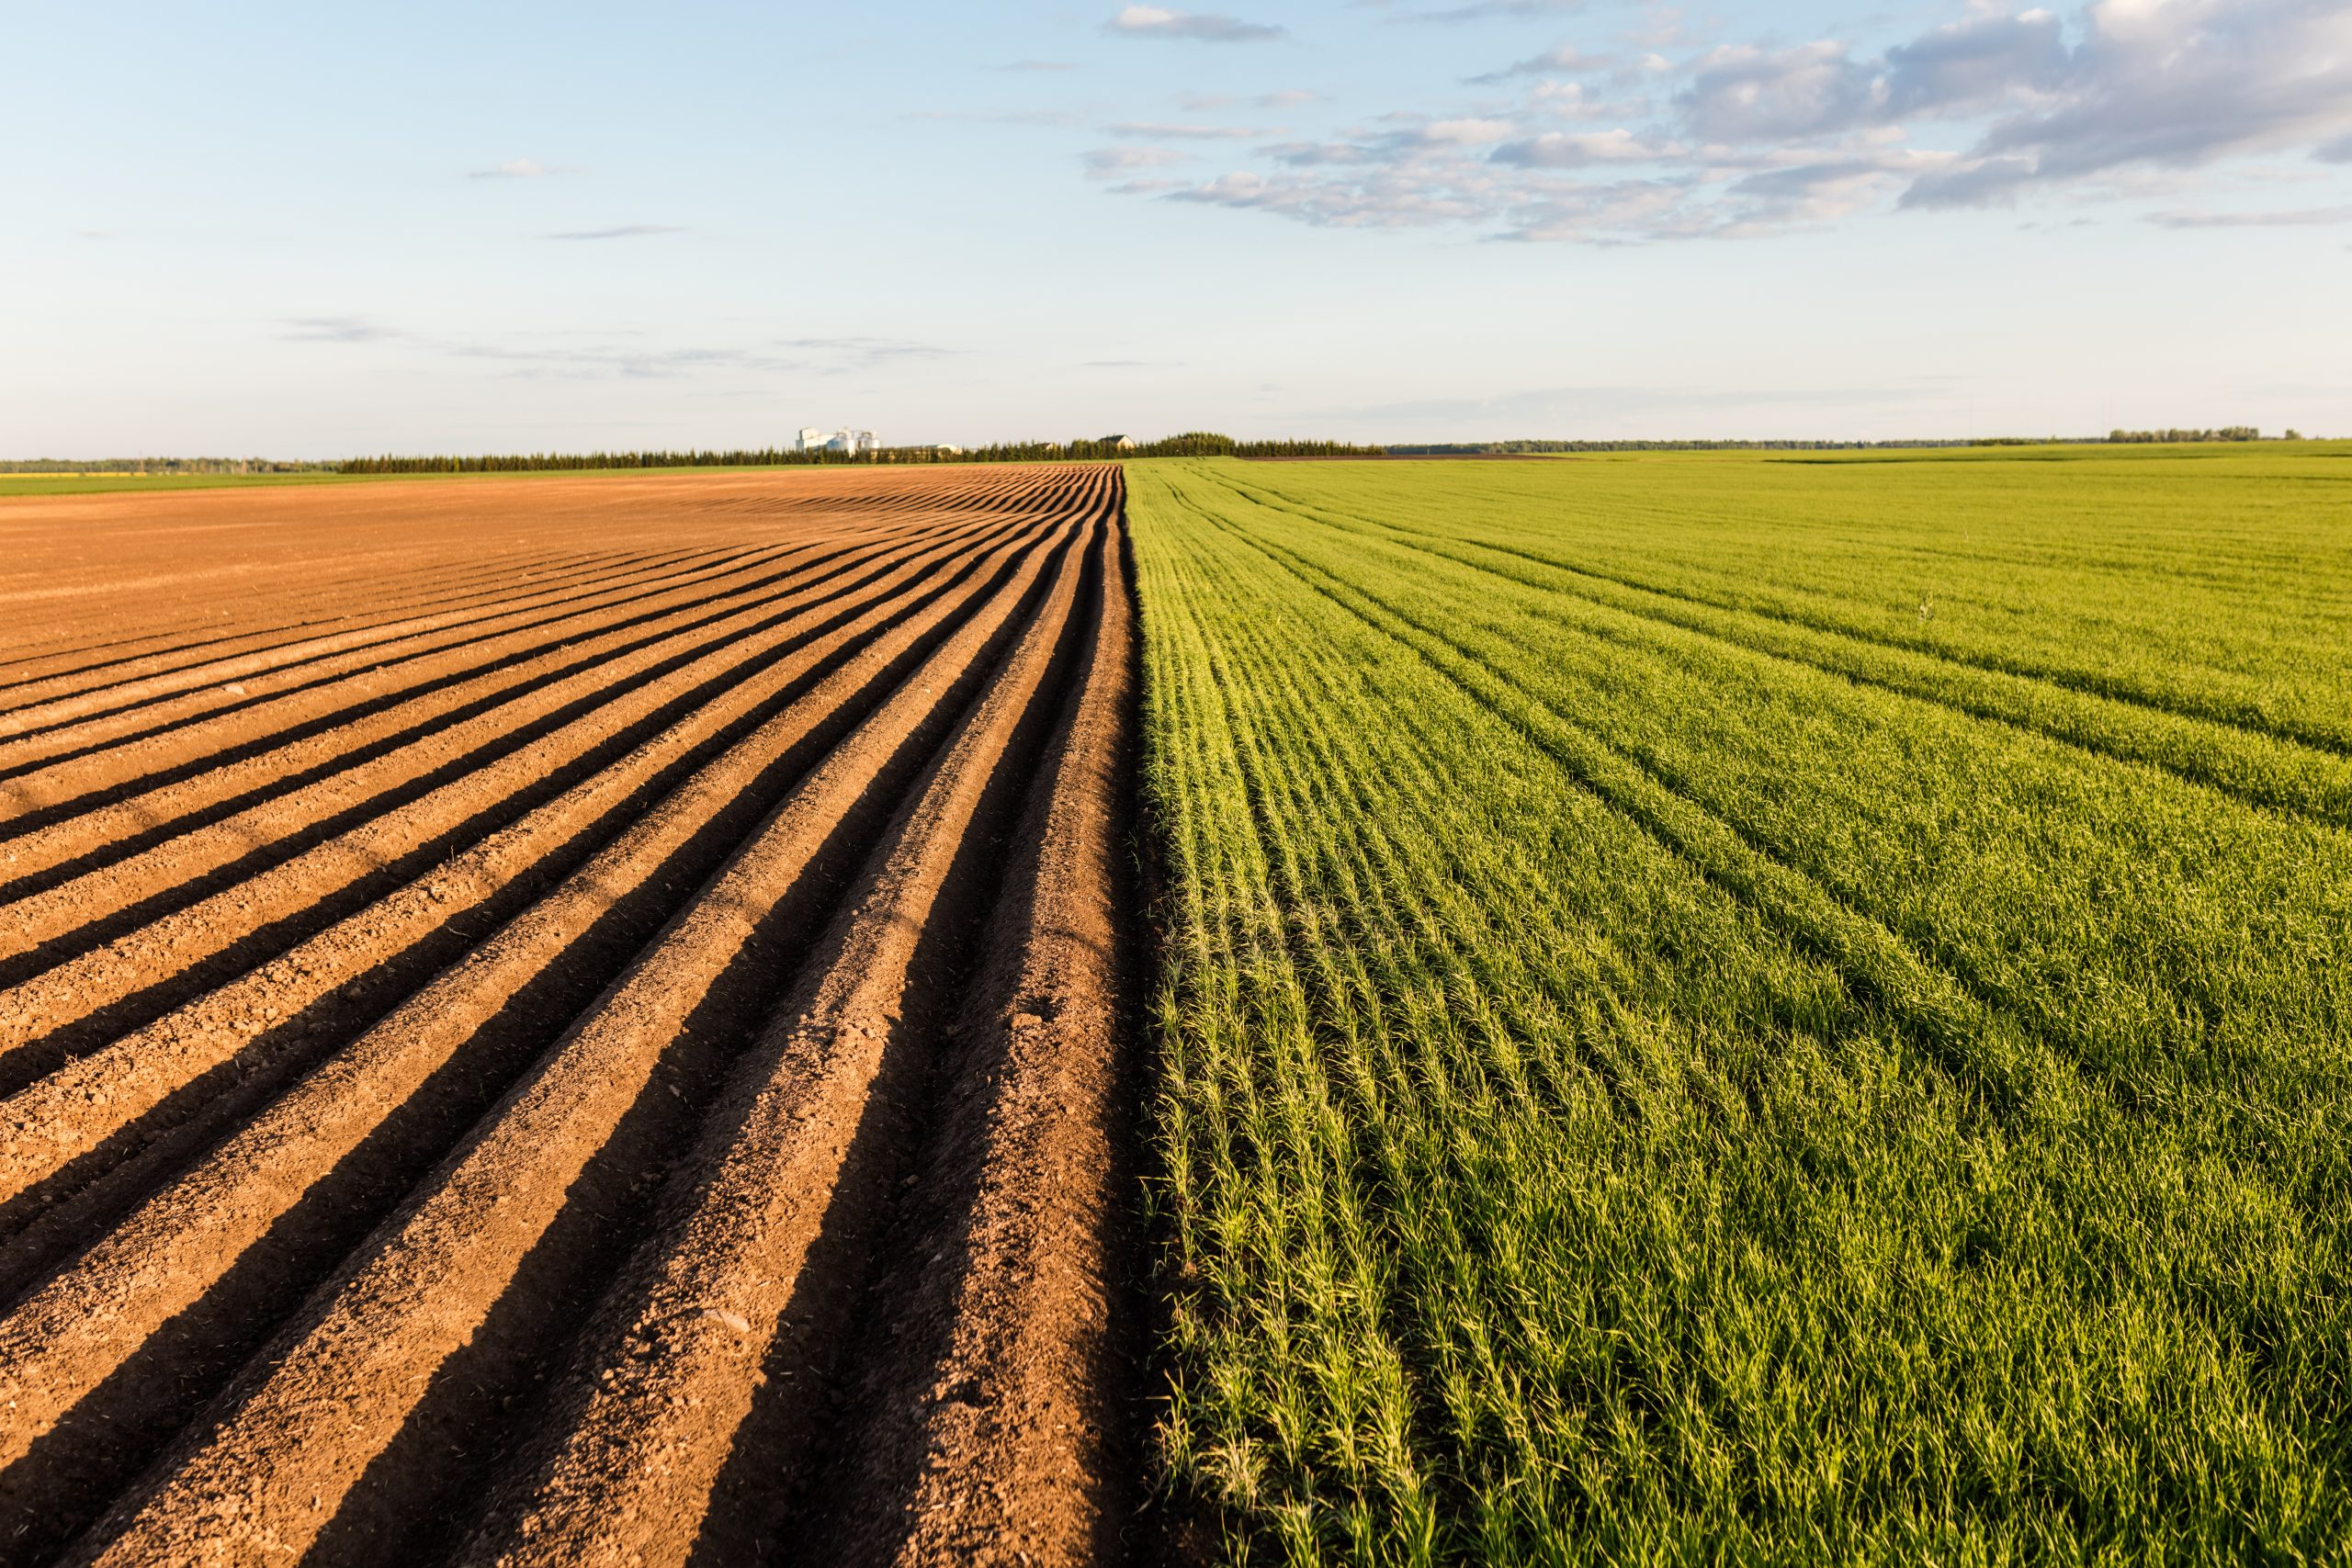 The boundary of an arable field.